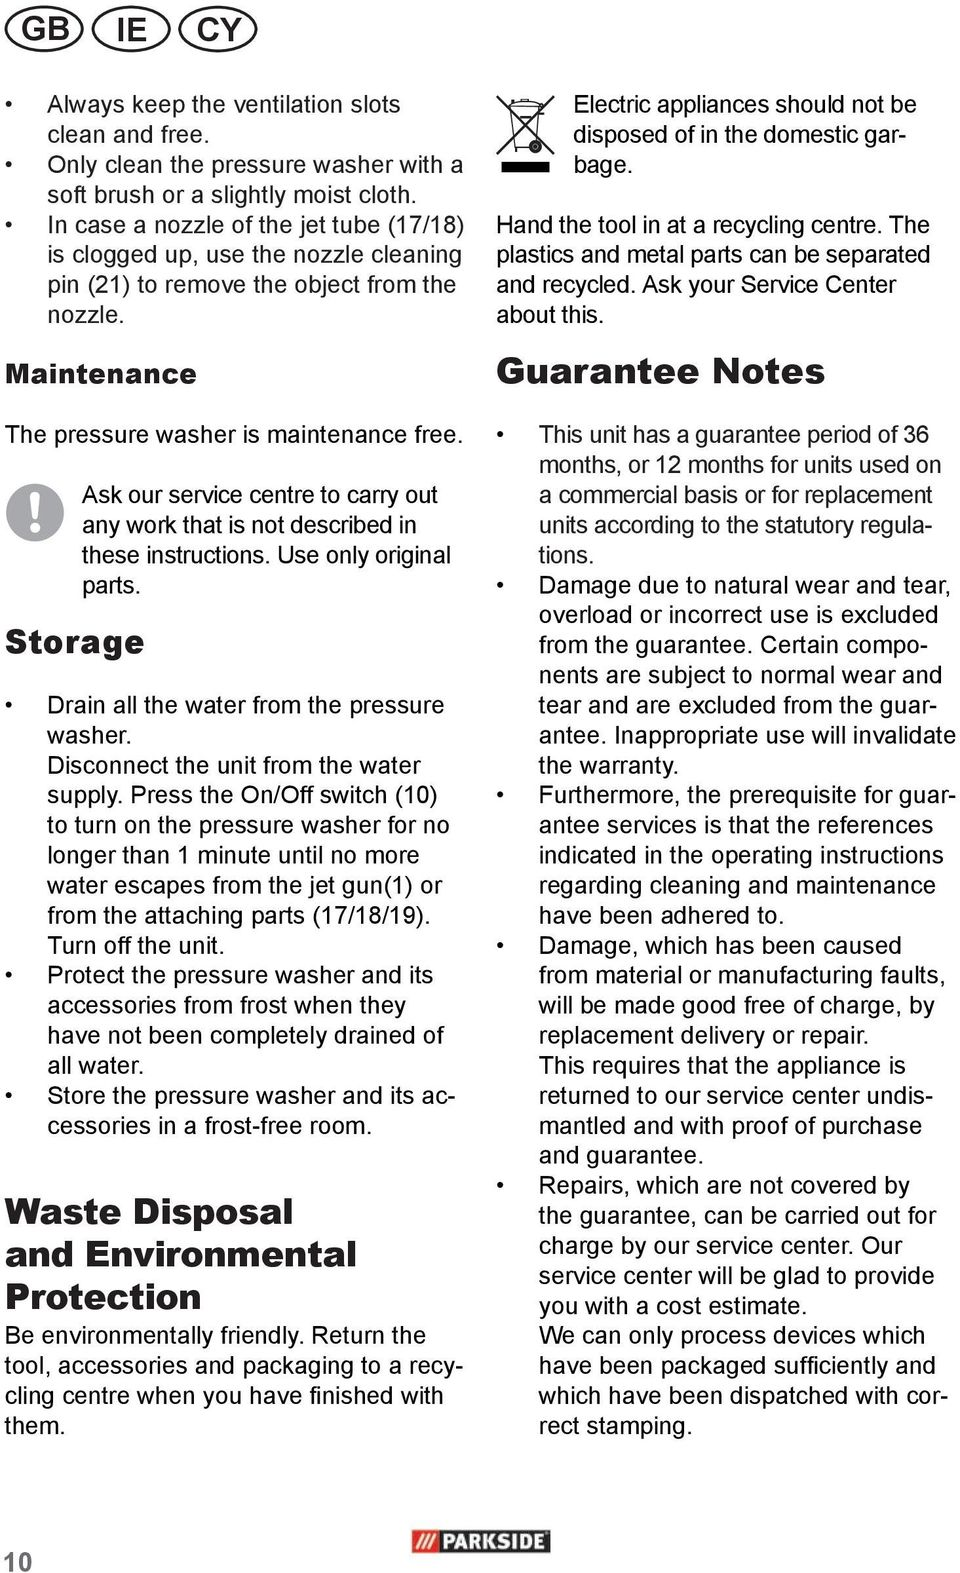 Storage Ask our service centre to carry out any work that is not described in these instructions. Use only original parts. Drain all the water from the pressure washer.